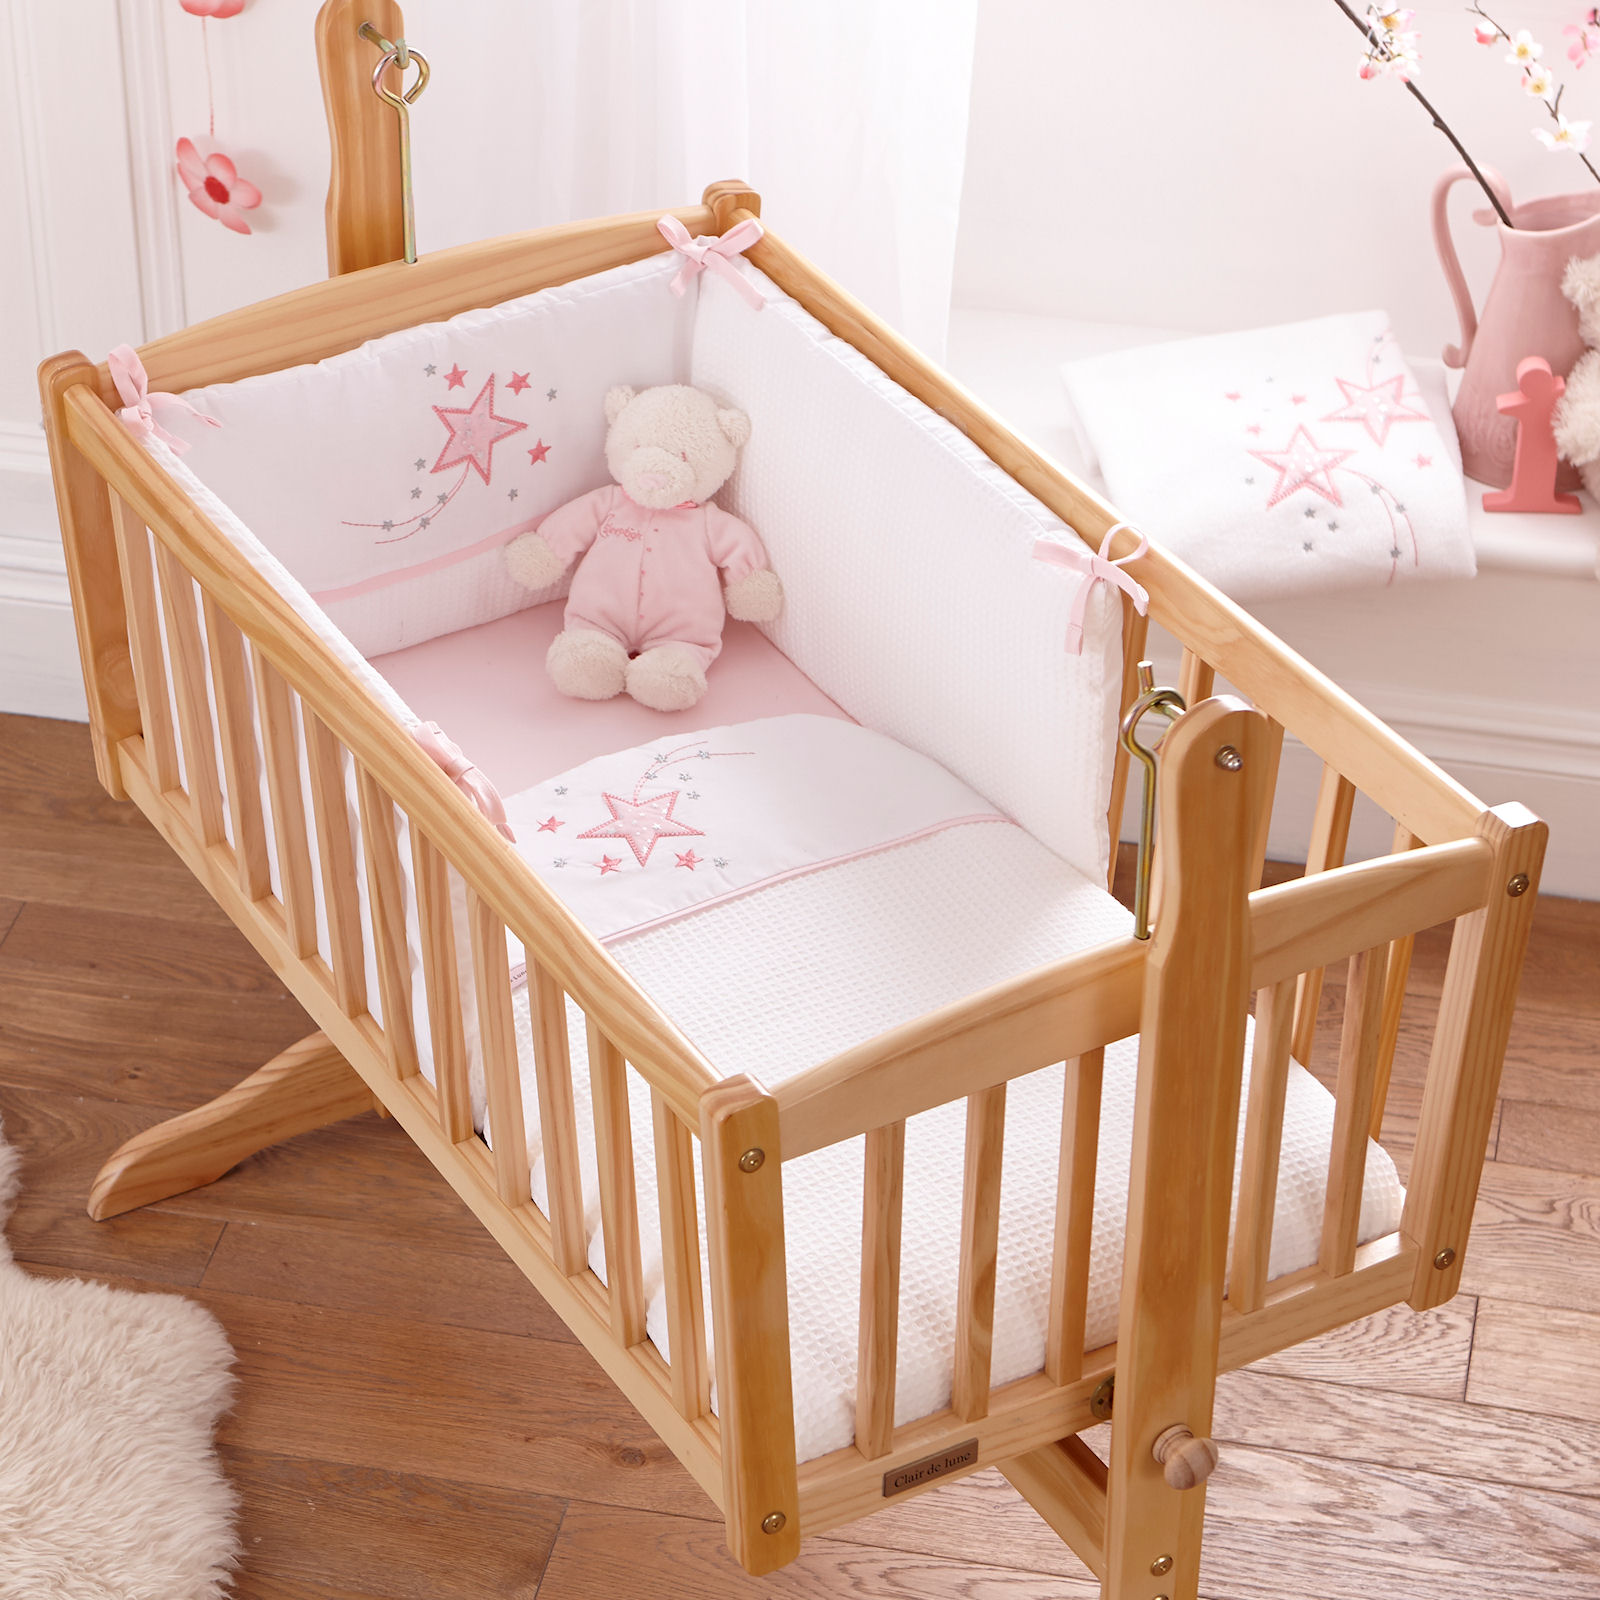 teddy swinging cribs hire bedding bumper mothercare with rent harrow mobile matching rentals crib mattress